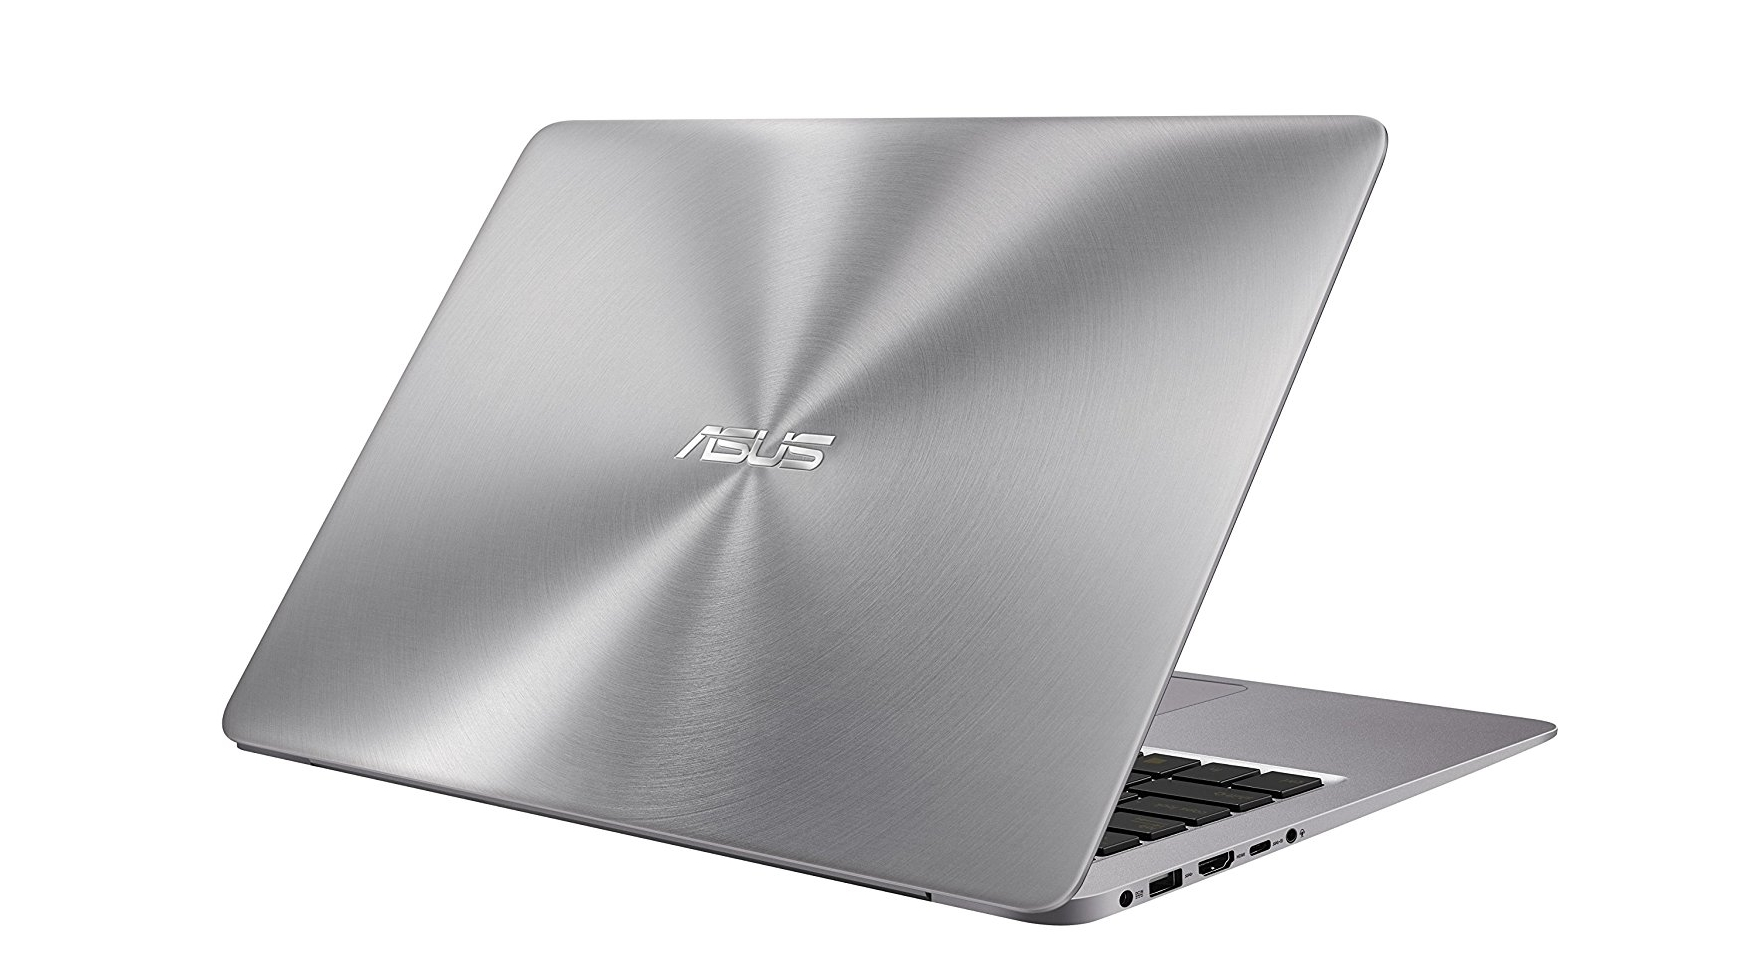 Best ASUS Laptop for Editing Video and Visual Contents